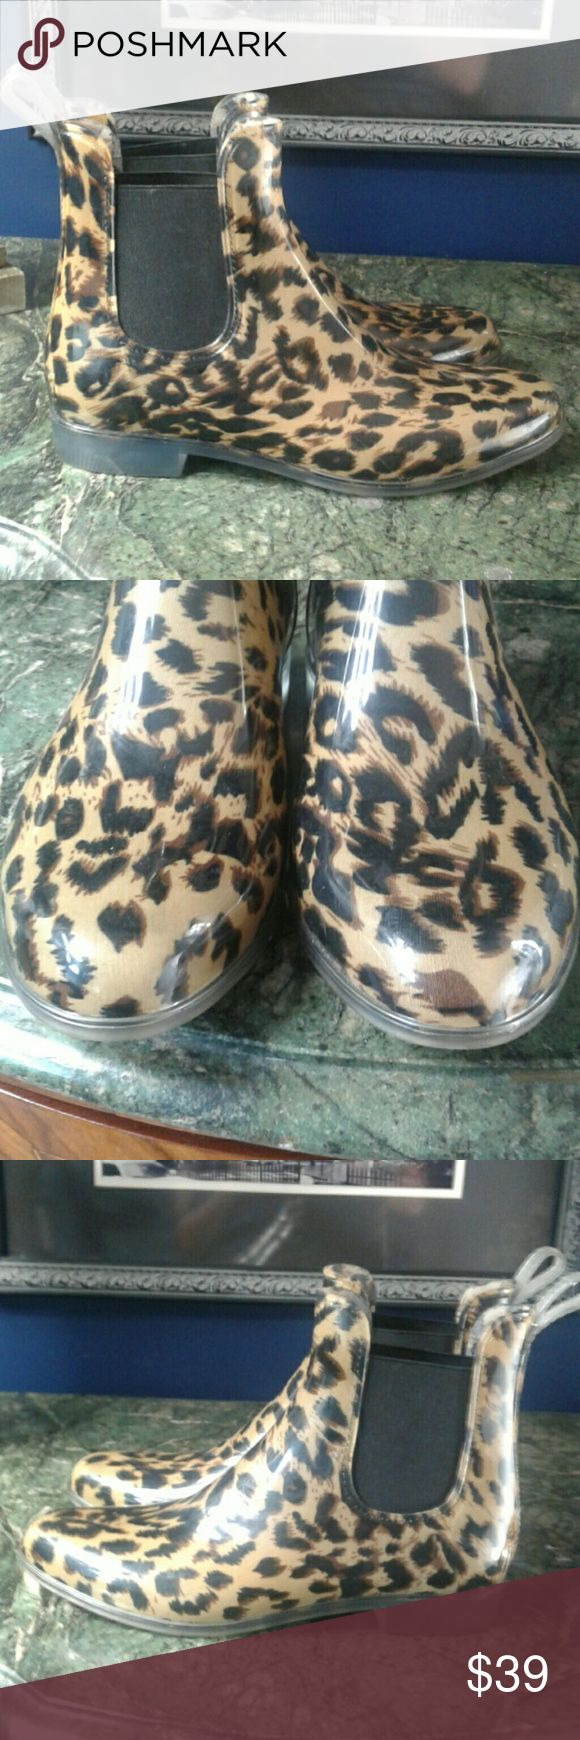 J Crew Chelsea rubber rain boots 10 New with out box leopard print rubber rain boots J Crew Shoes Winter & Rain Boots